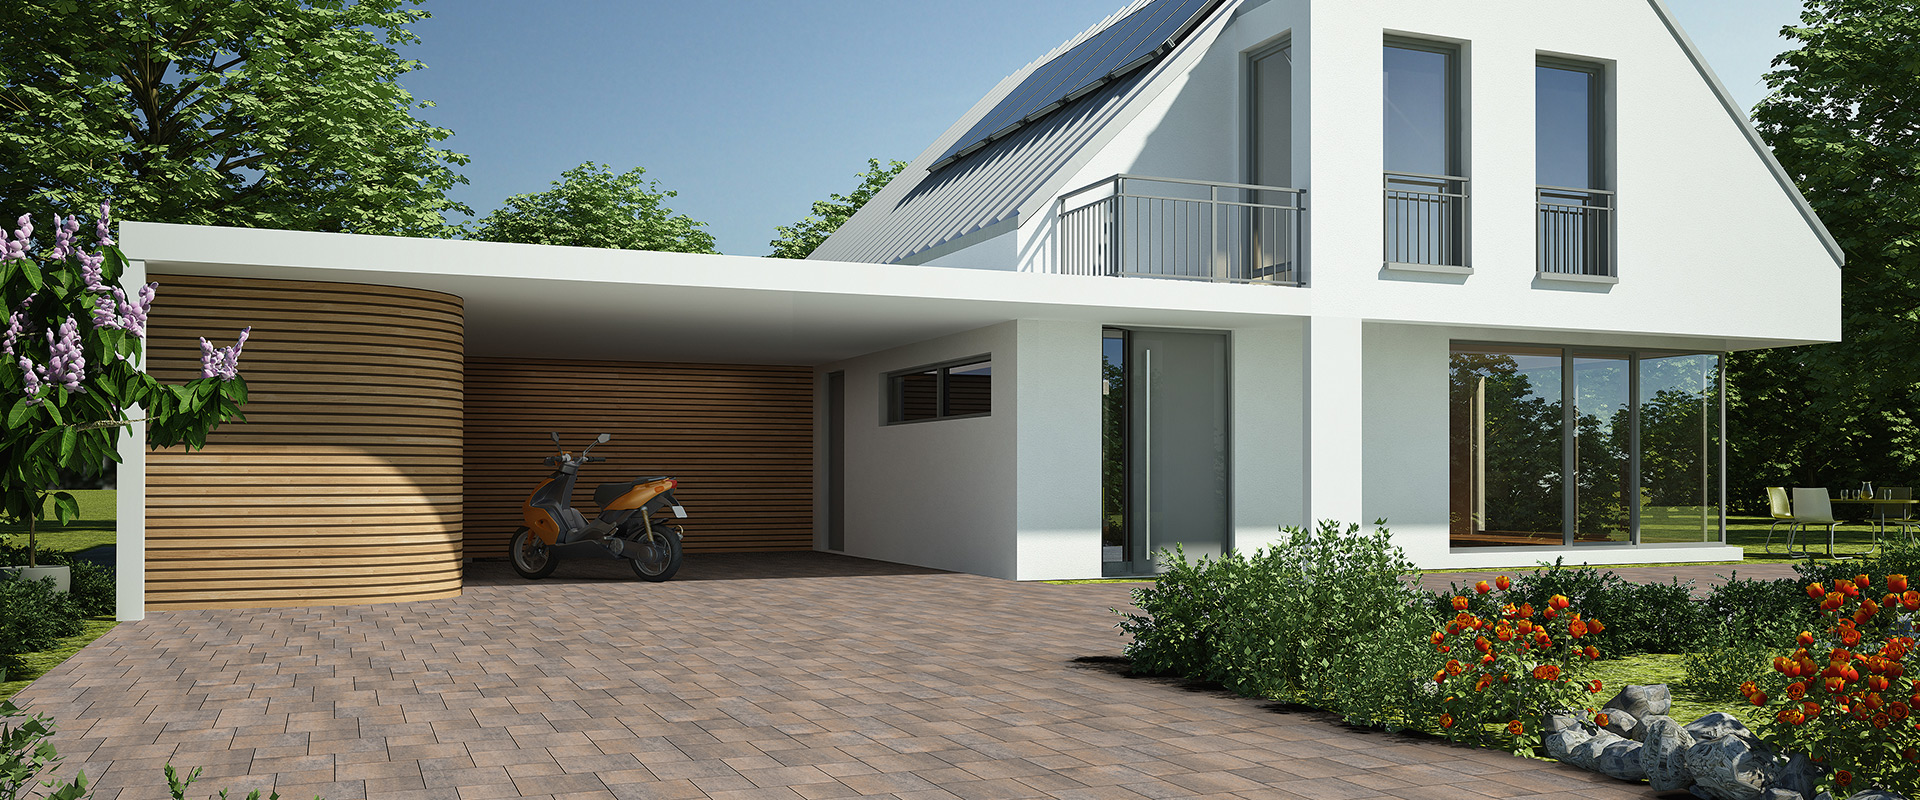 »GerloSelect« design paving stones